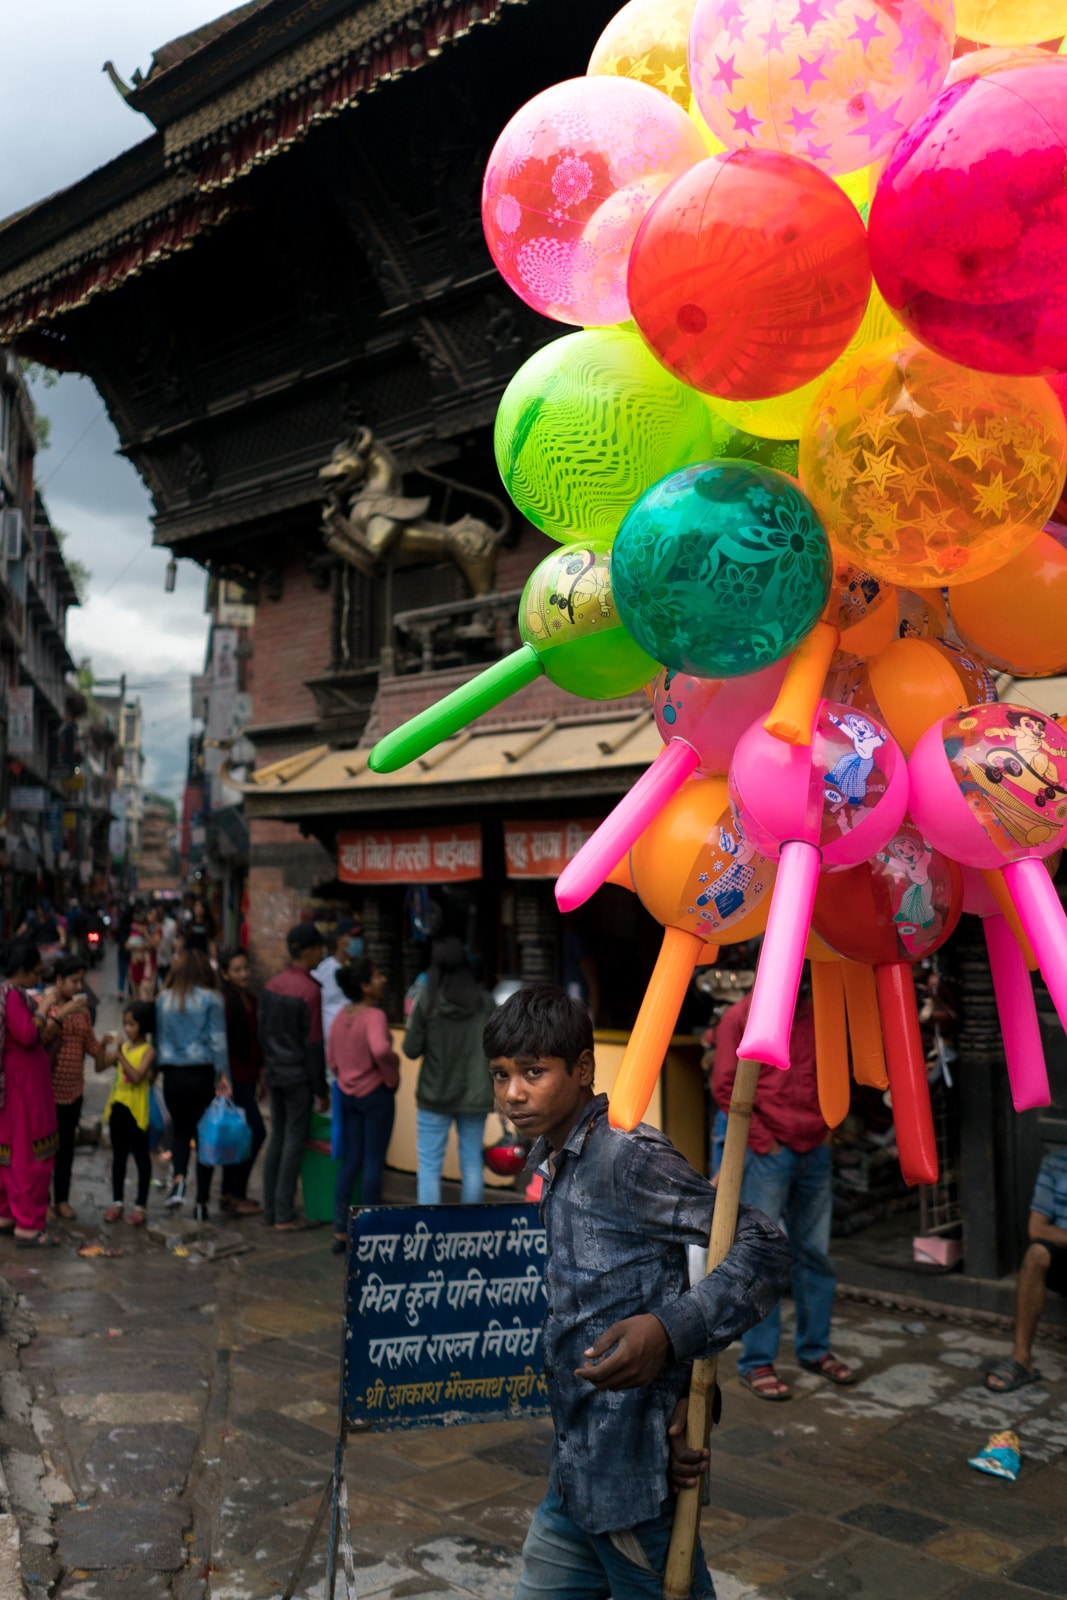 A young boy selling colorful balloons in a street market in Kathmandu, Nepal.